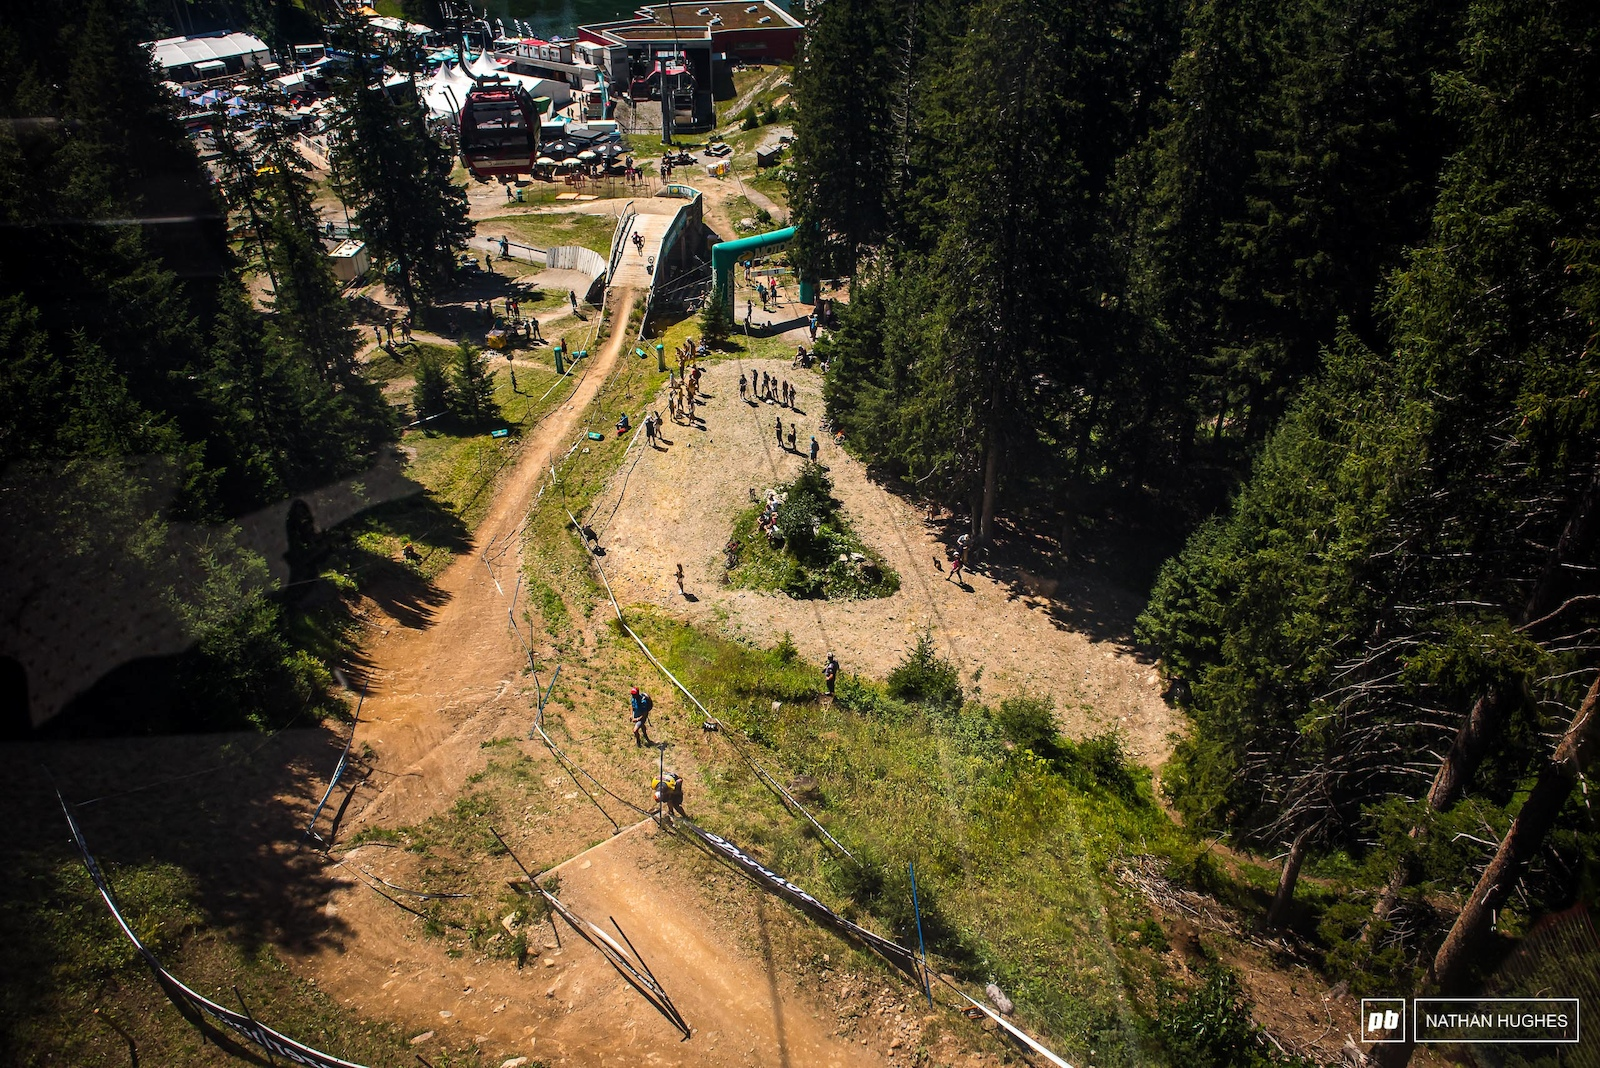 The only course on the circuit where you can descend on the lift in almost perfect sync with a rider below and watch pretty much the entire run.